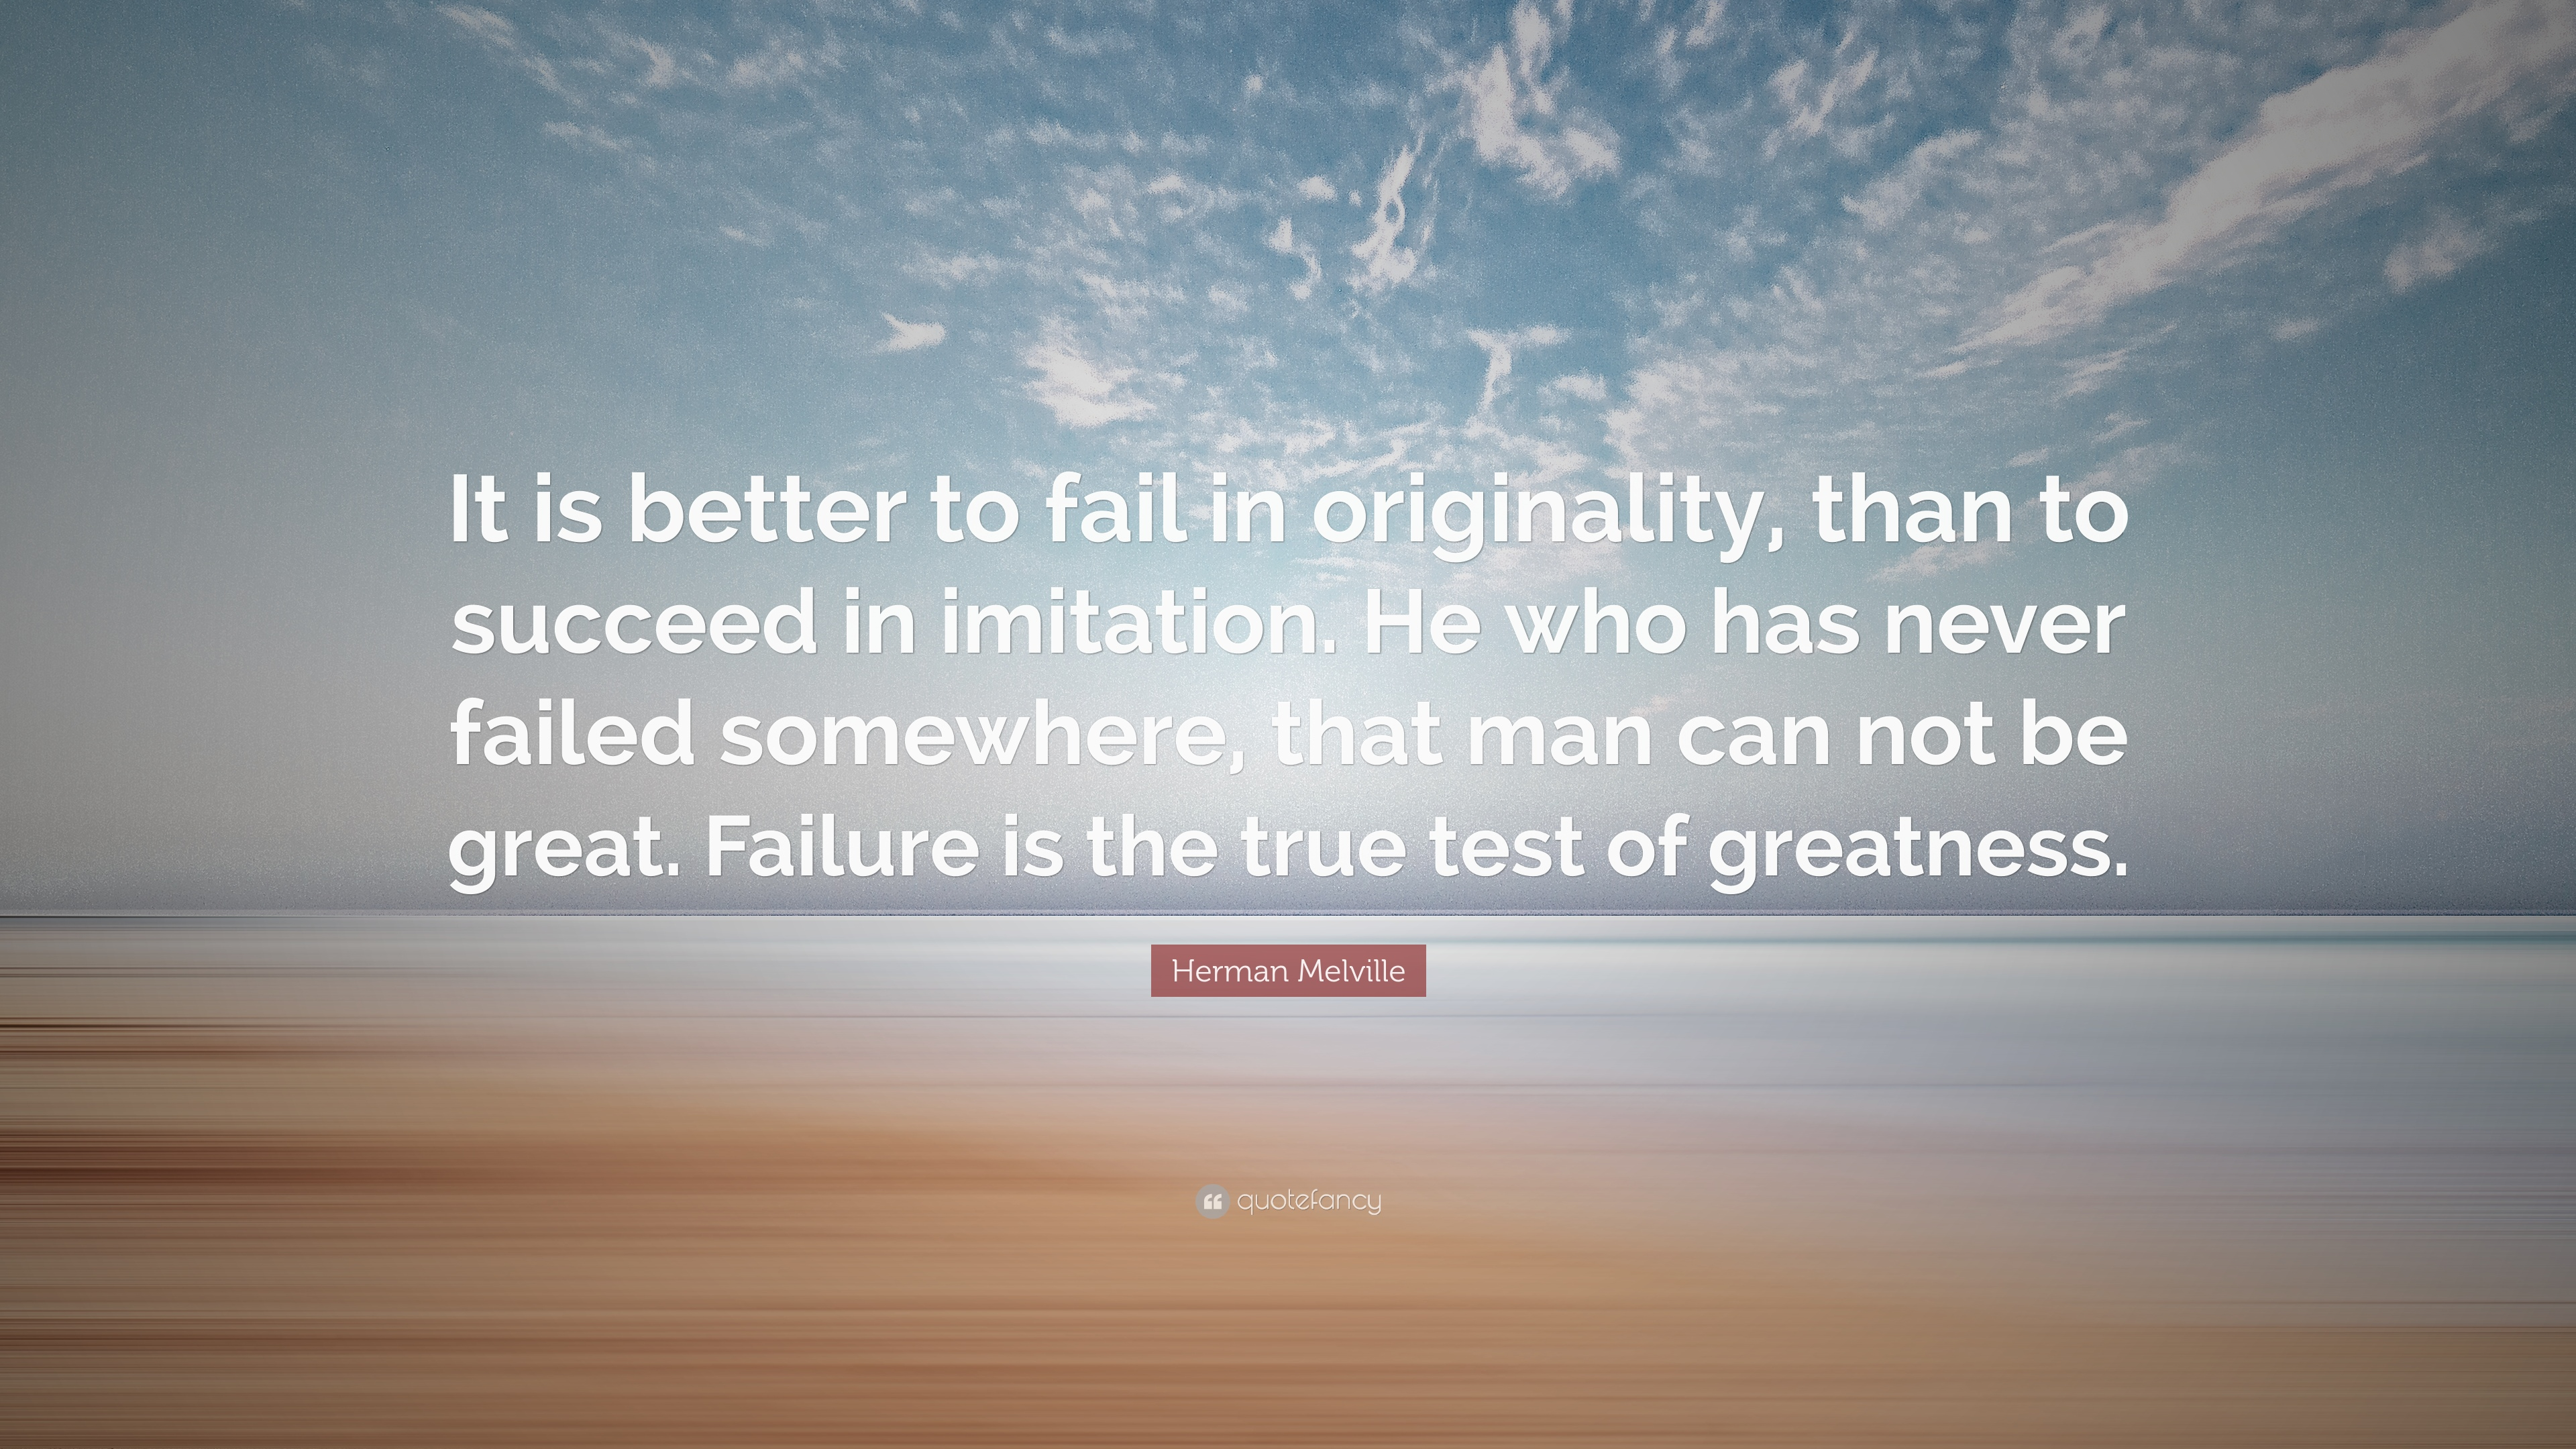 Herman Melville Quote: U201cIt Is Better To Fail In Originality, Than To Succeed